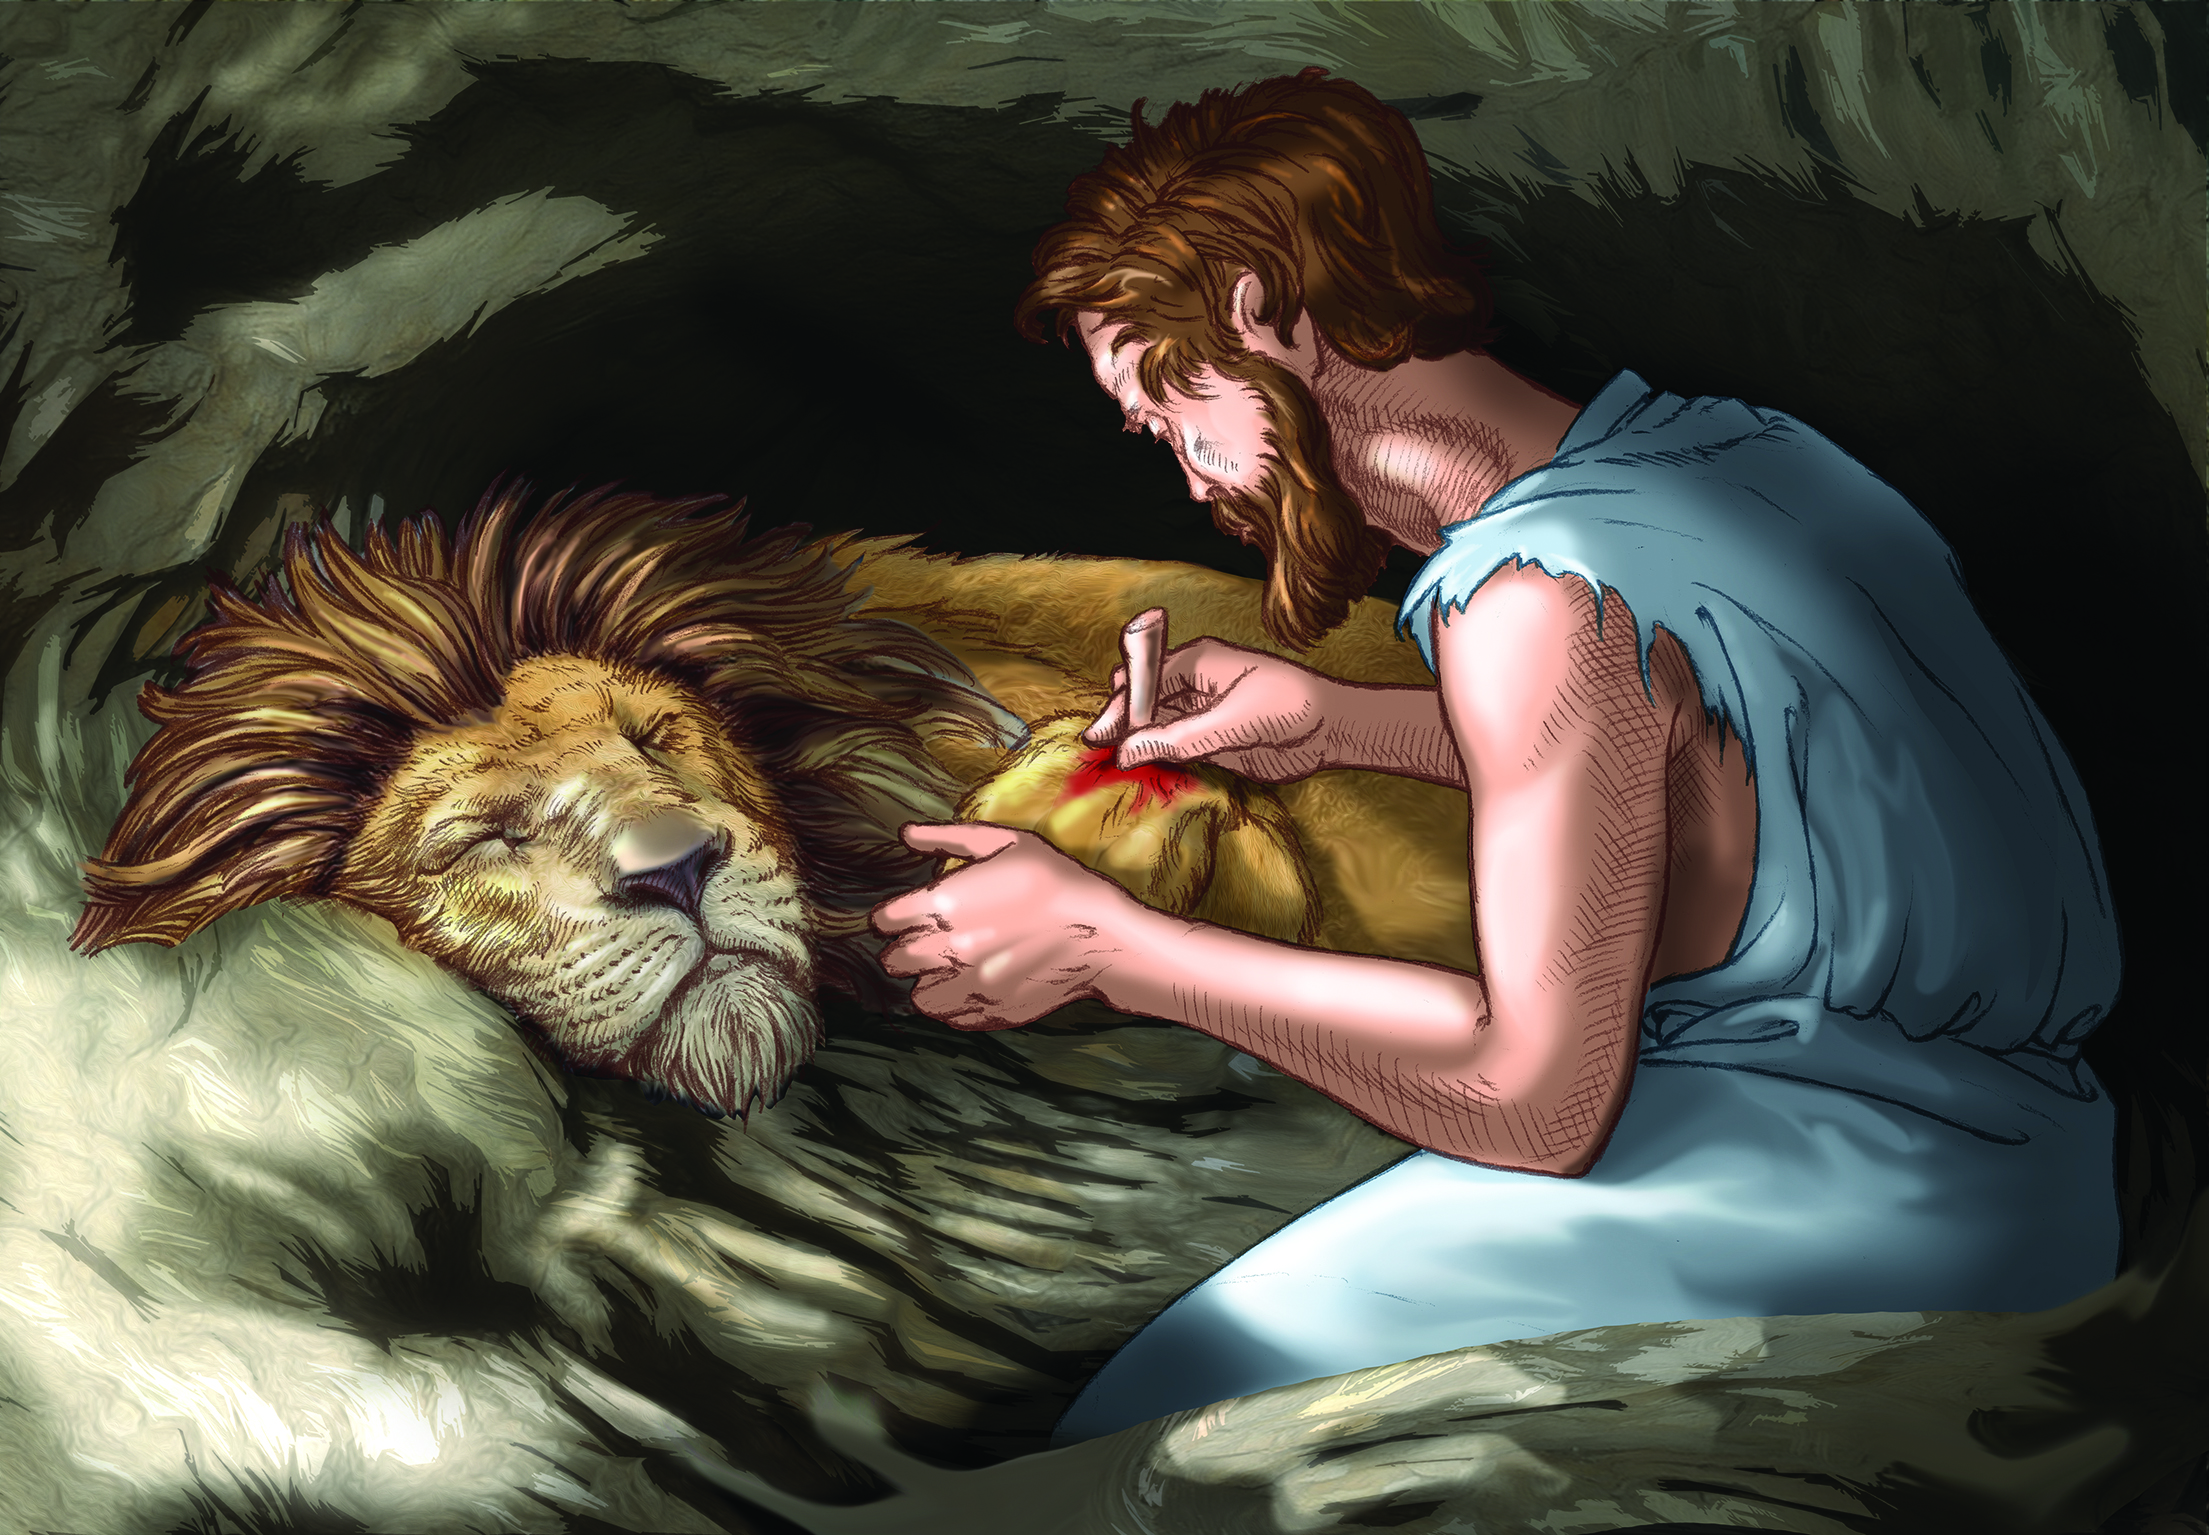 L3_Classics_the slave and the lion_1_final.jpg